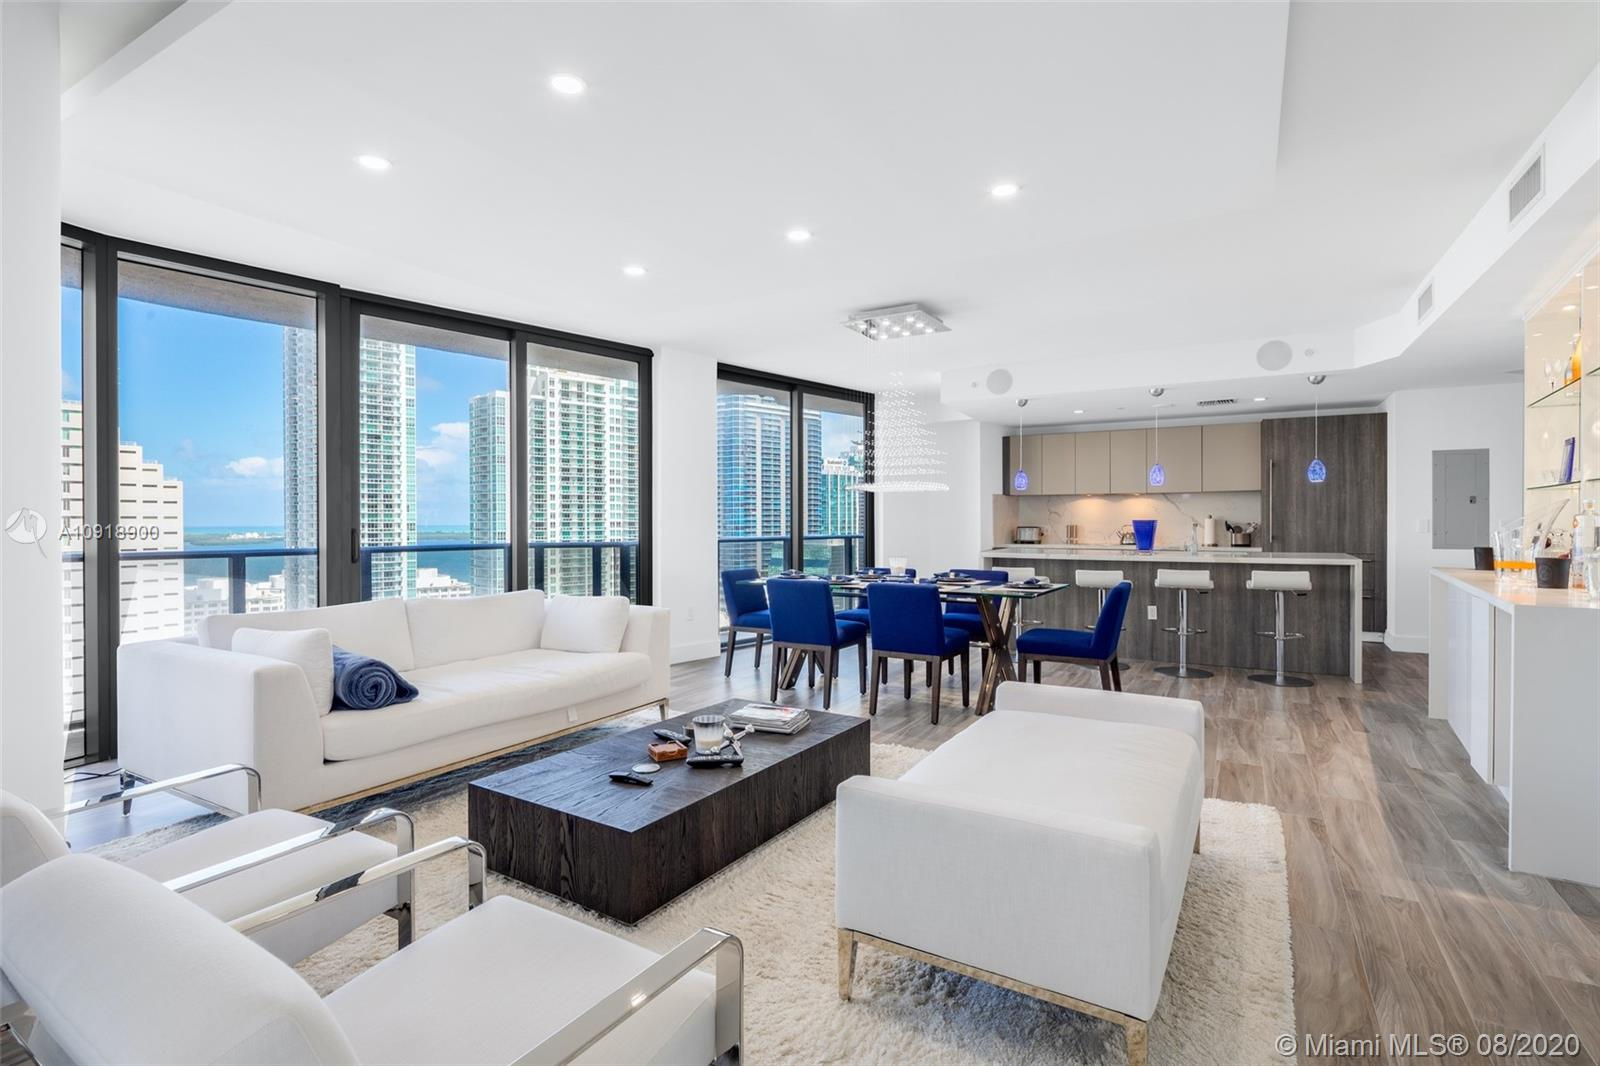 Located in the Heart of Brickell, this rare NE Corner Combination Residence at SLS Lux features nearly 2500 SF of Living Space w/ a large wraparound terrace. Residence 2605 is a 3 Bedroom + Den w/ 4 full bathrooms & features countless upgrades including an Italkraft Kitchen w/ top of the line appliances, Smart Home automation system , private elevator entry, Lutron Lighting, Surround Sound, Electric Shades, Custom Closets, Nest Cameras & Thermostats. This unique design of the 05 & 06 line creates one of the largest living areas of any layout & is ideal for families or entertainment. Enjoy 5 star living w/ world class amenities & dining in the building such as Katsuya, while having all of the amazing shops and restaurants at your doorstep within Brickell City Centre. Over $150k in Upgrades